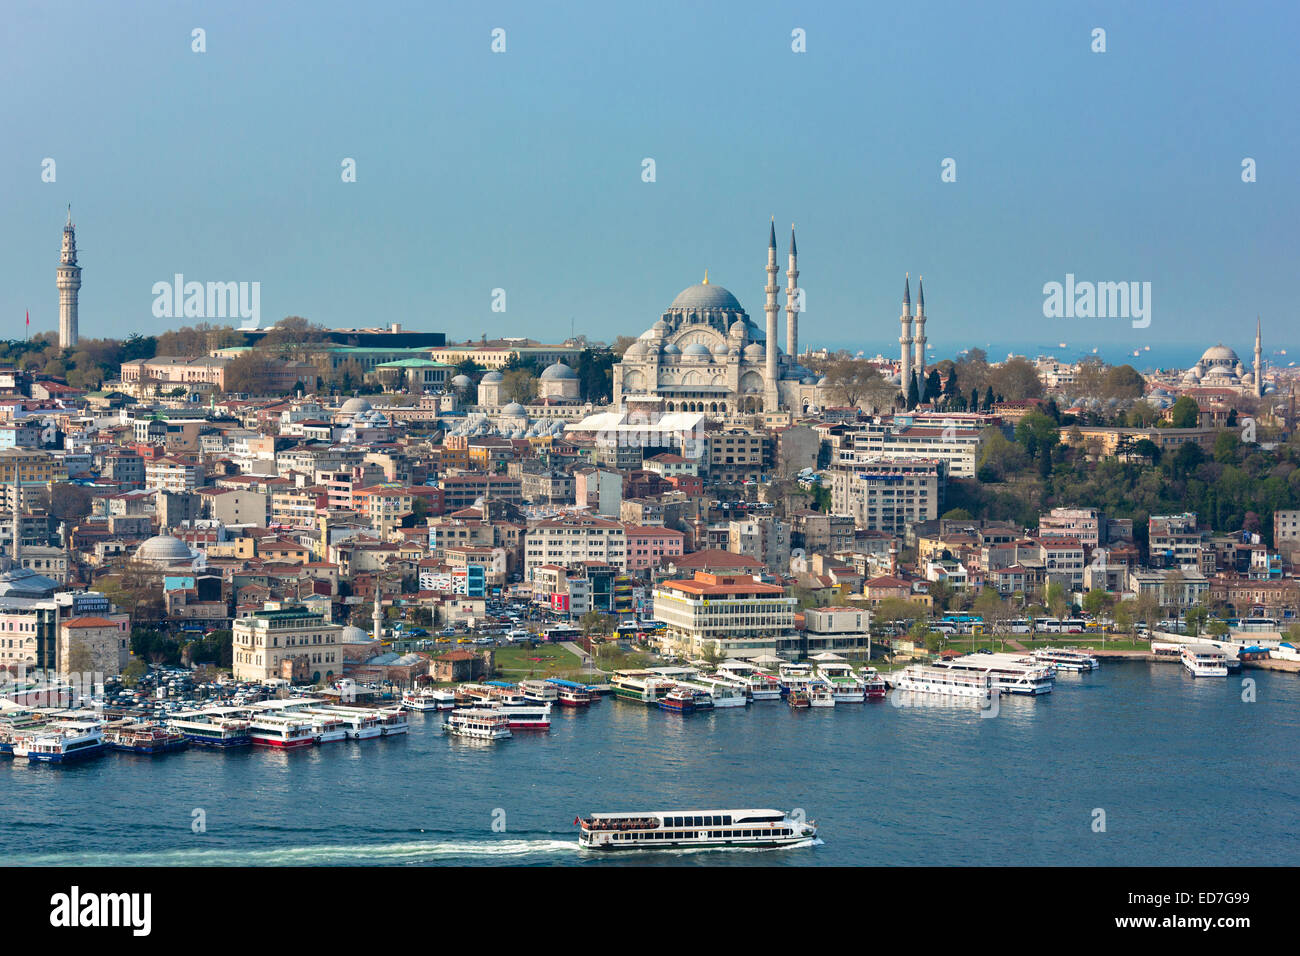 Skyline cityscape and the Blue Mosque and passenger ferry boat  on Bosphorus River in Istanbul, Republic of Turkey - Stock Image